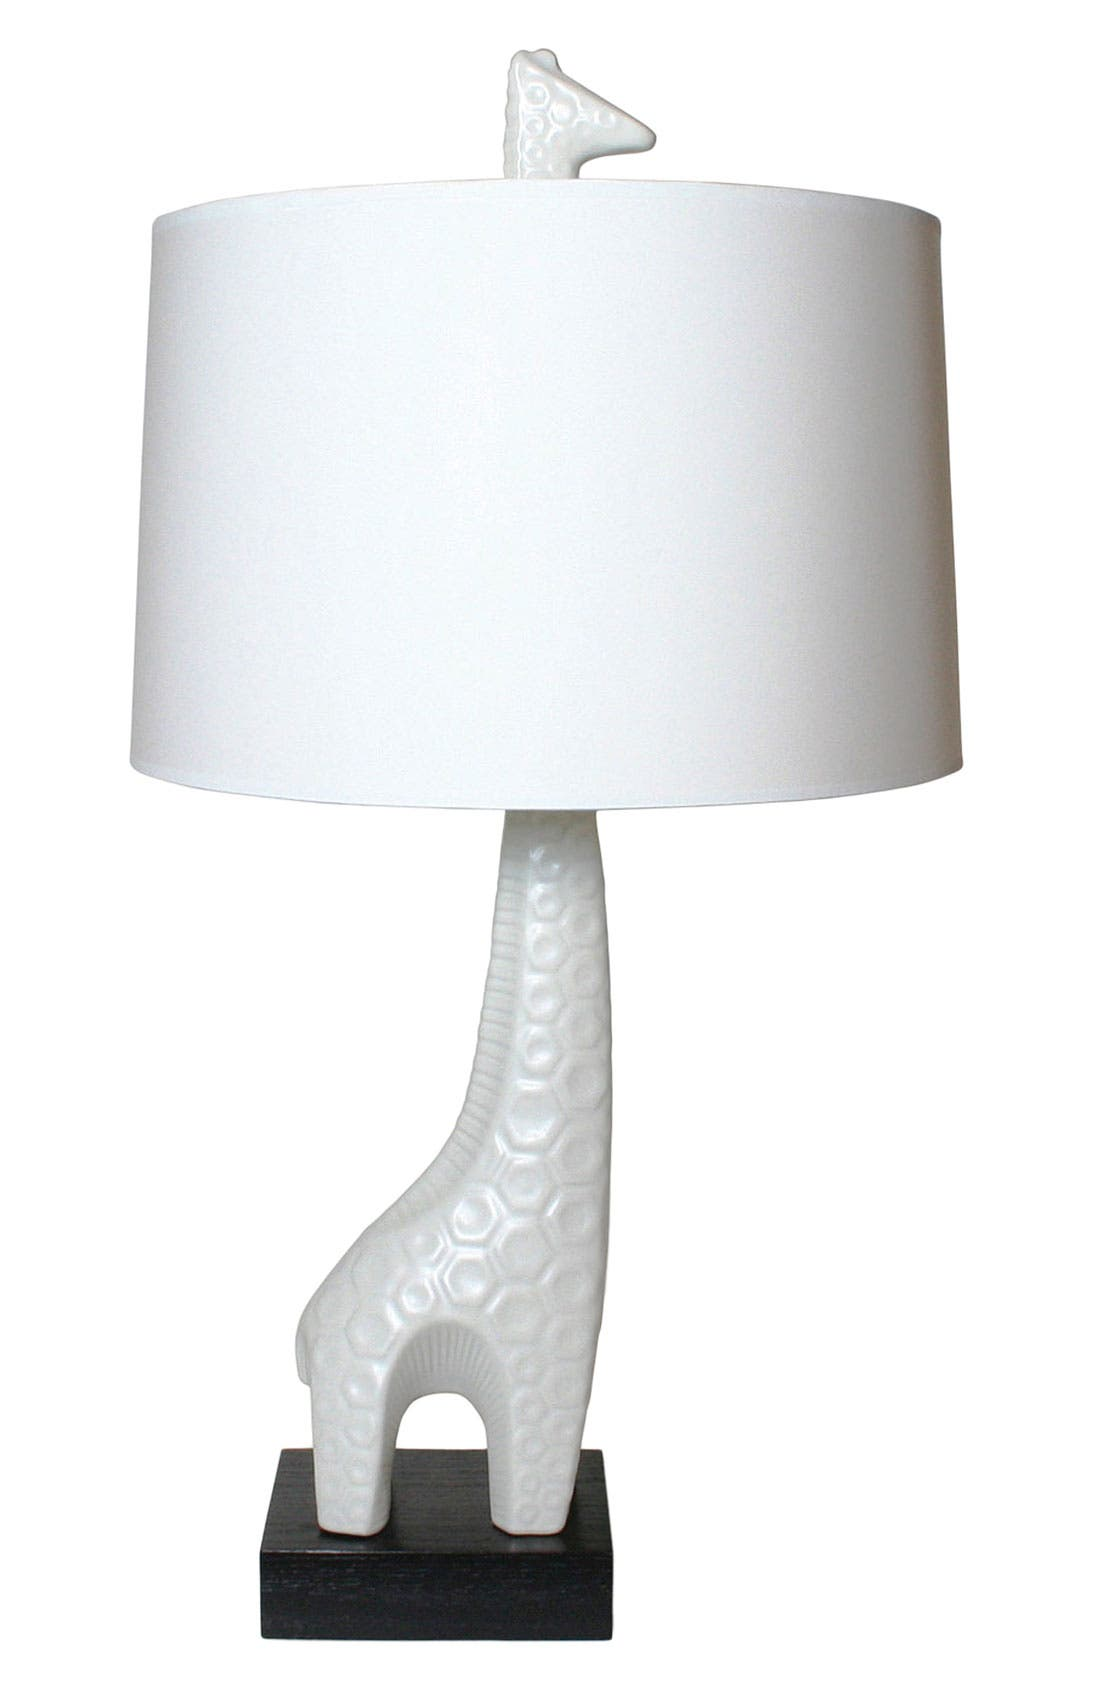 Alternate Image 1 Selected - Jonathan Adler 'Giraffe' Lamp